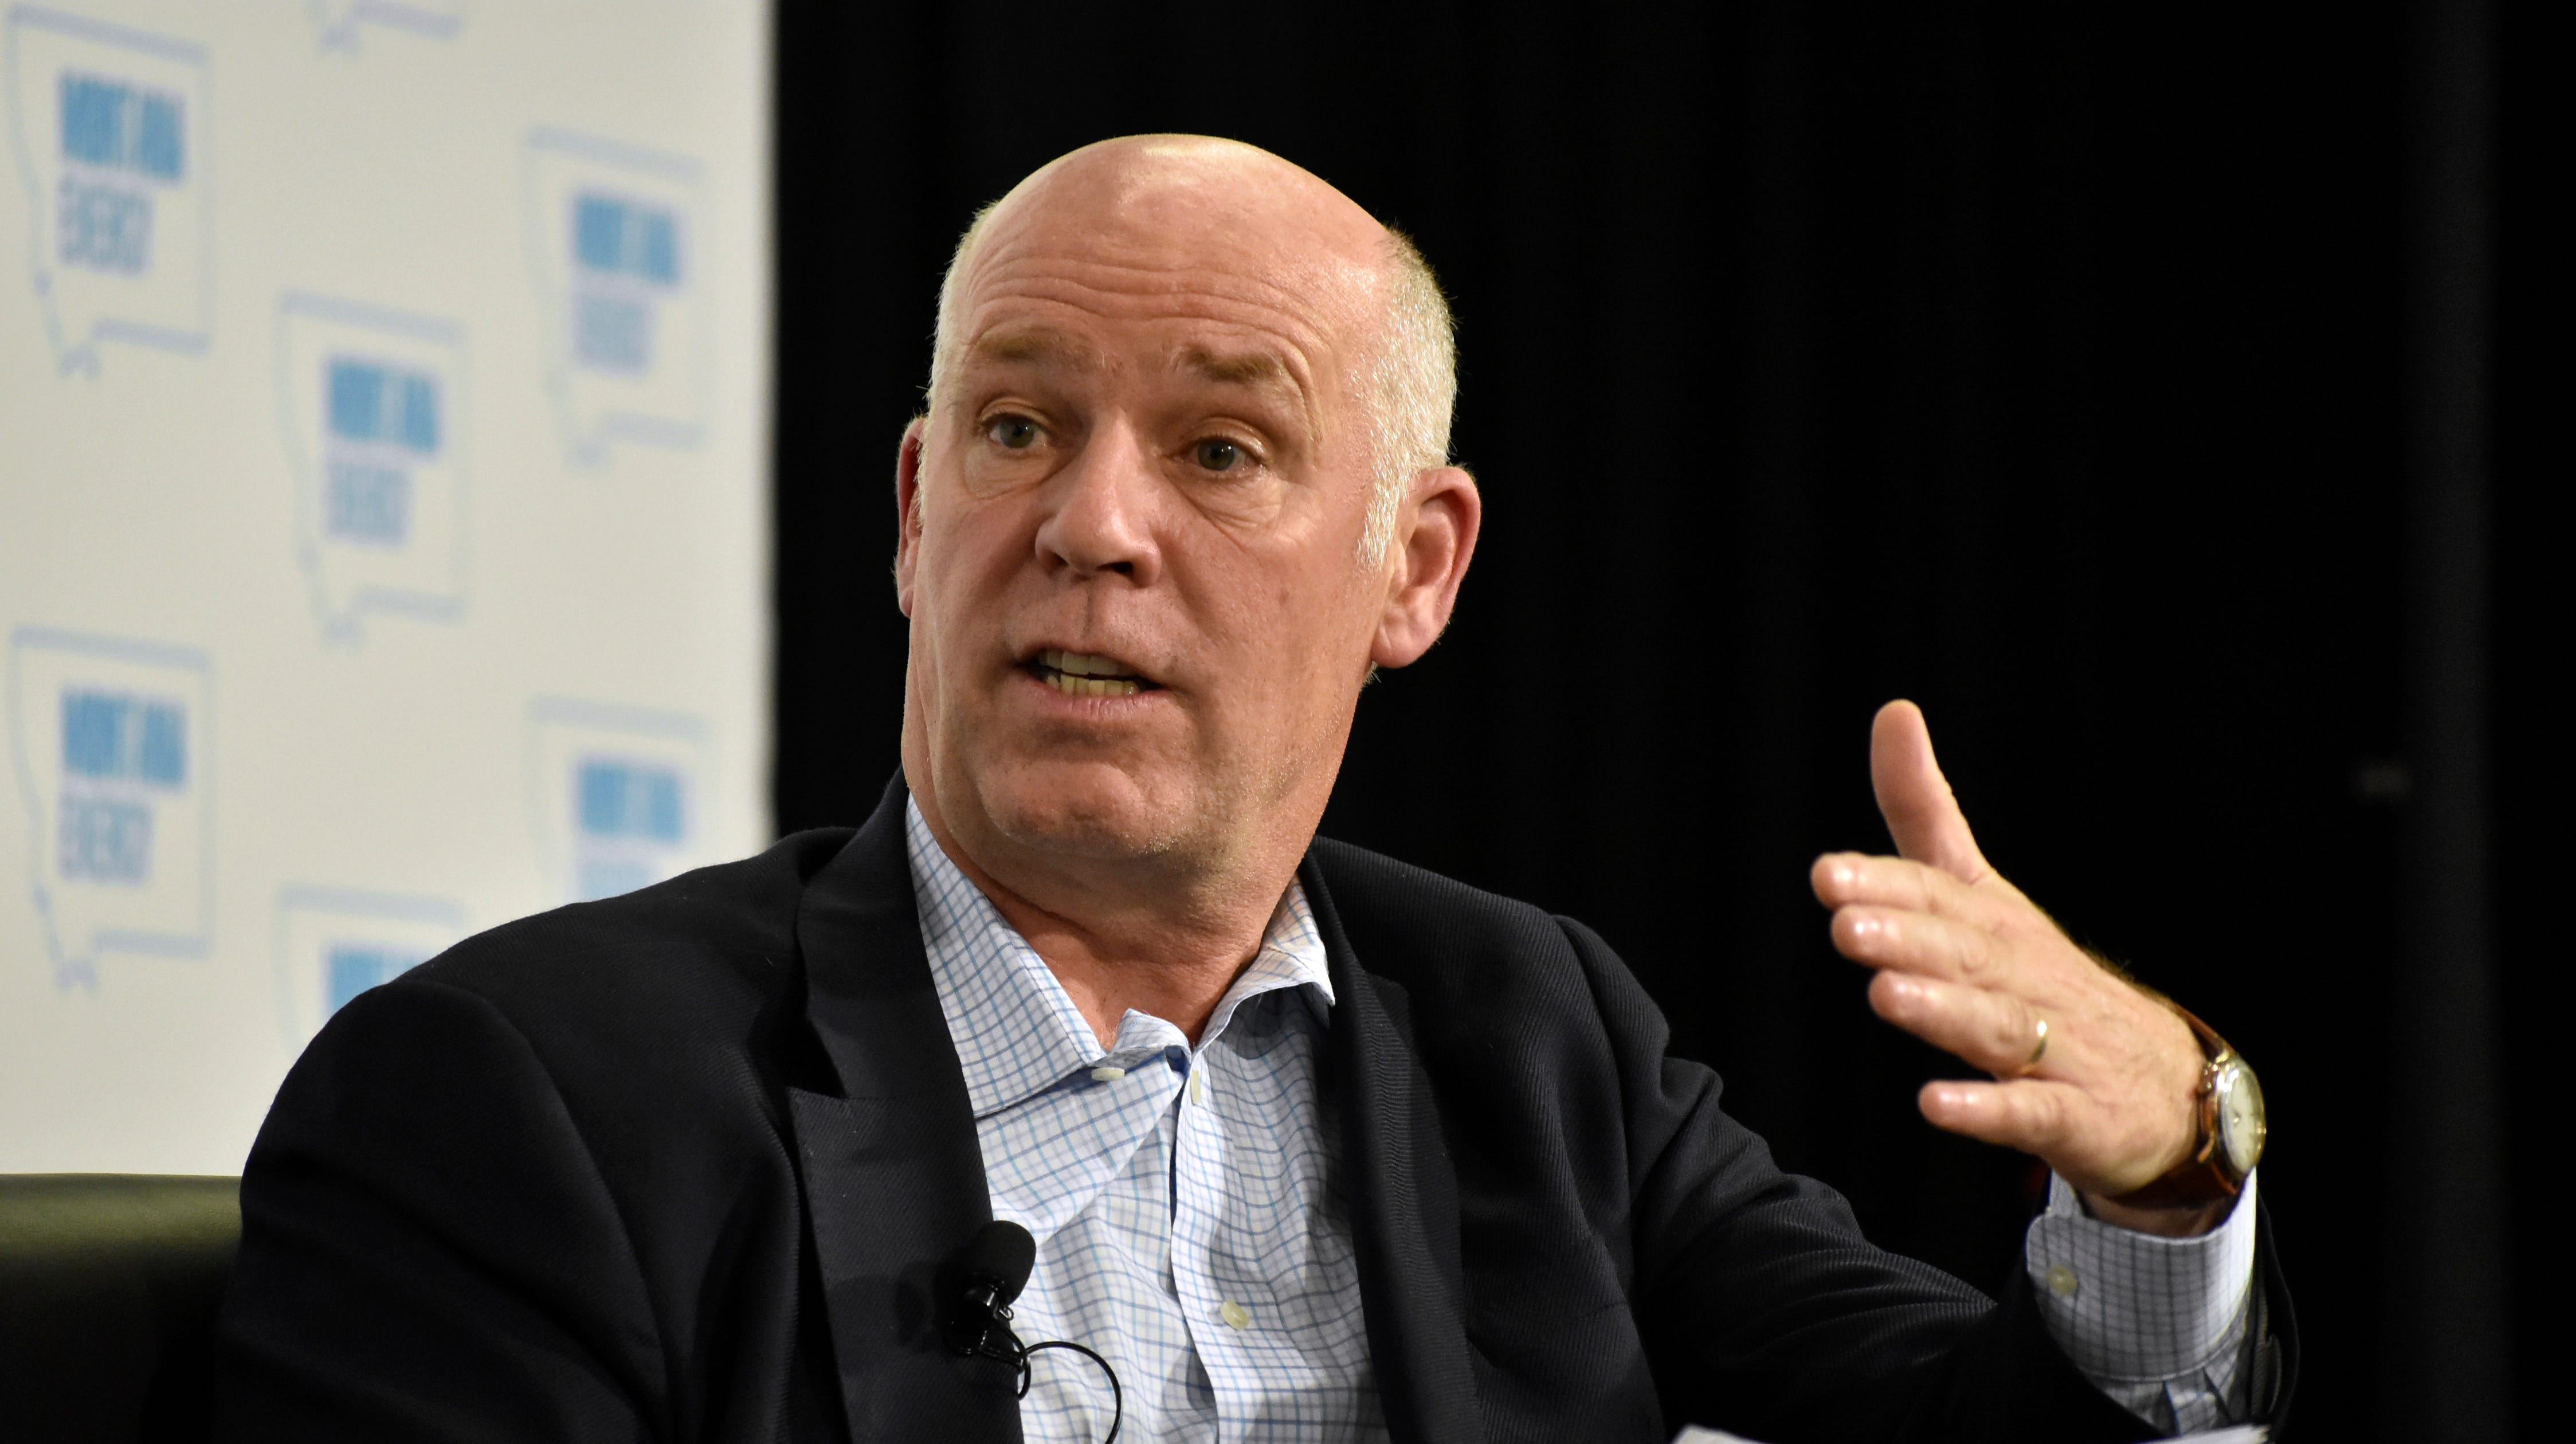 FILE - In this May 31, 2018 photo U.S. Rep. Greg Gianforte speaks about U.S. energy policy at a conference in Billings, Mont.